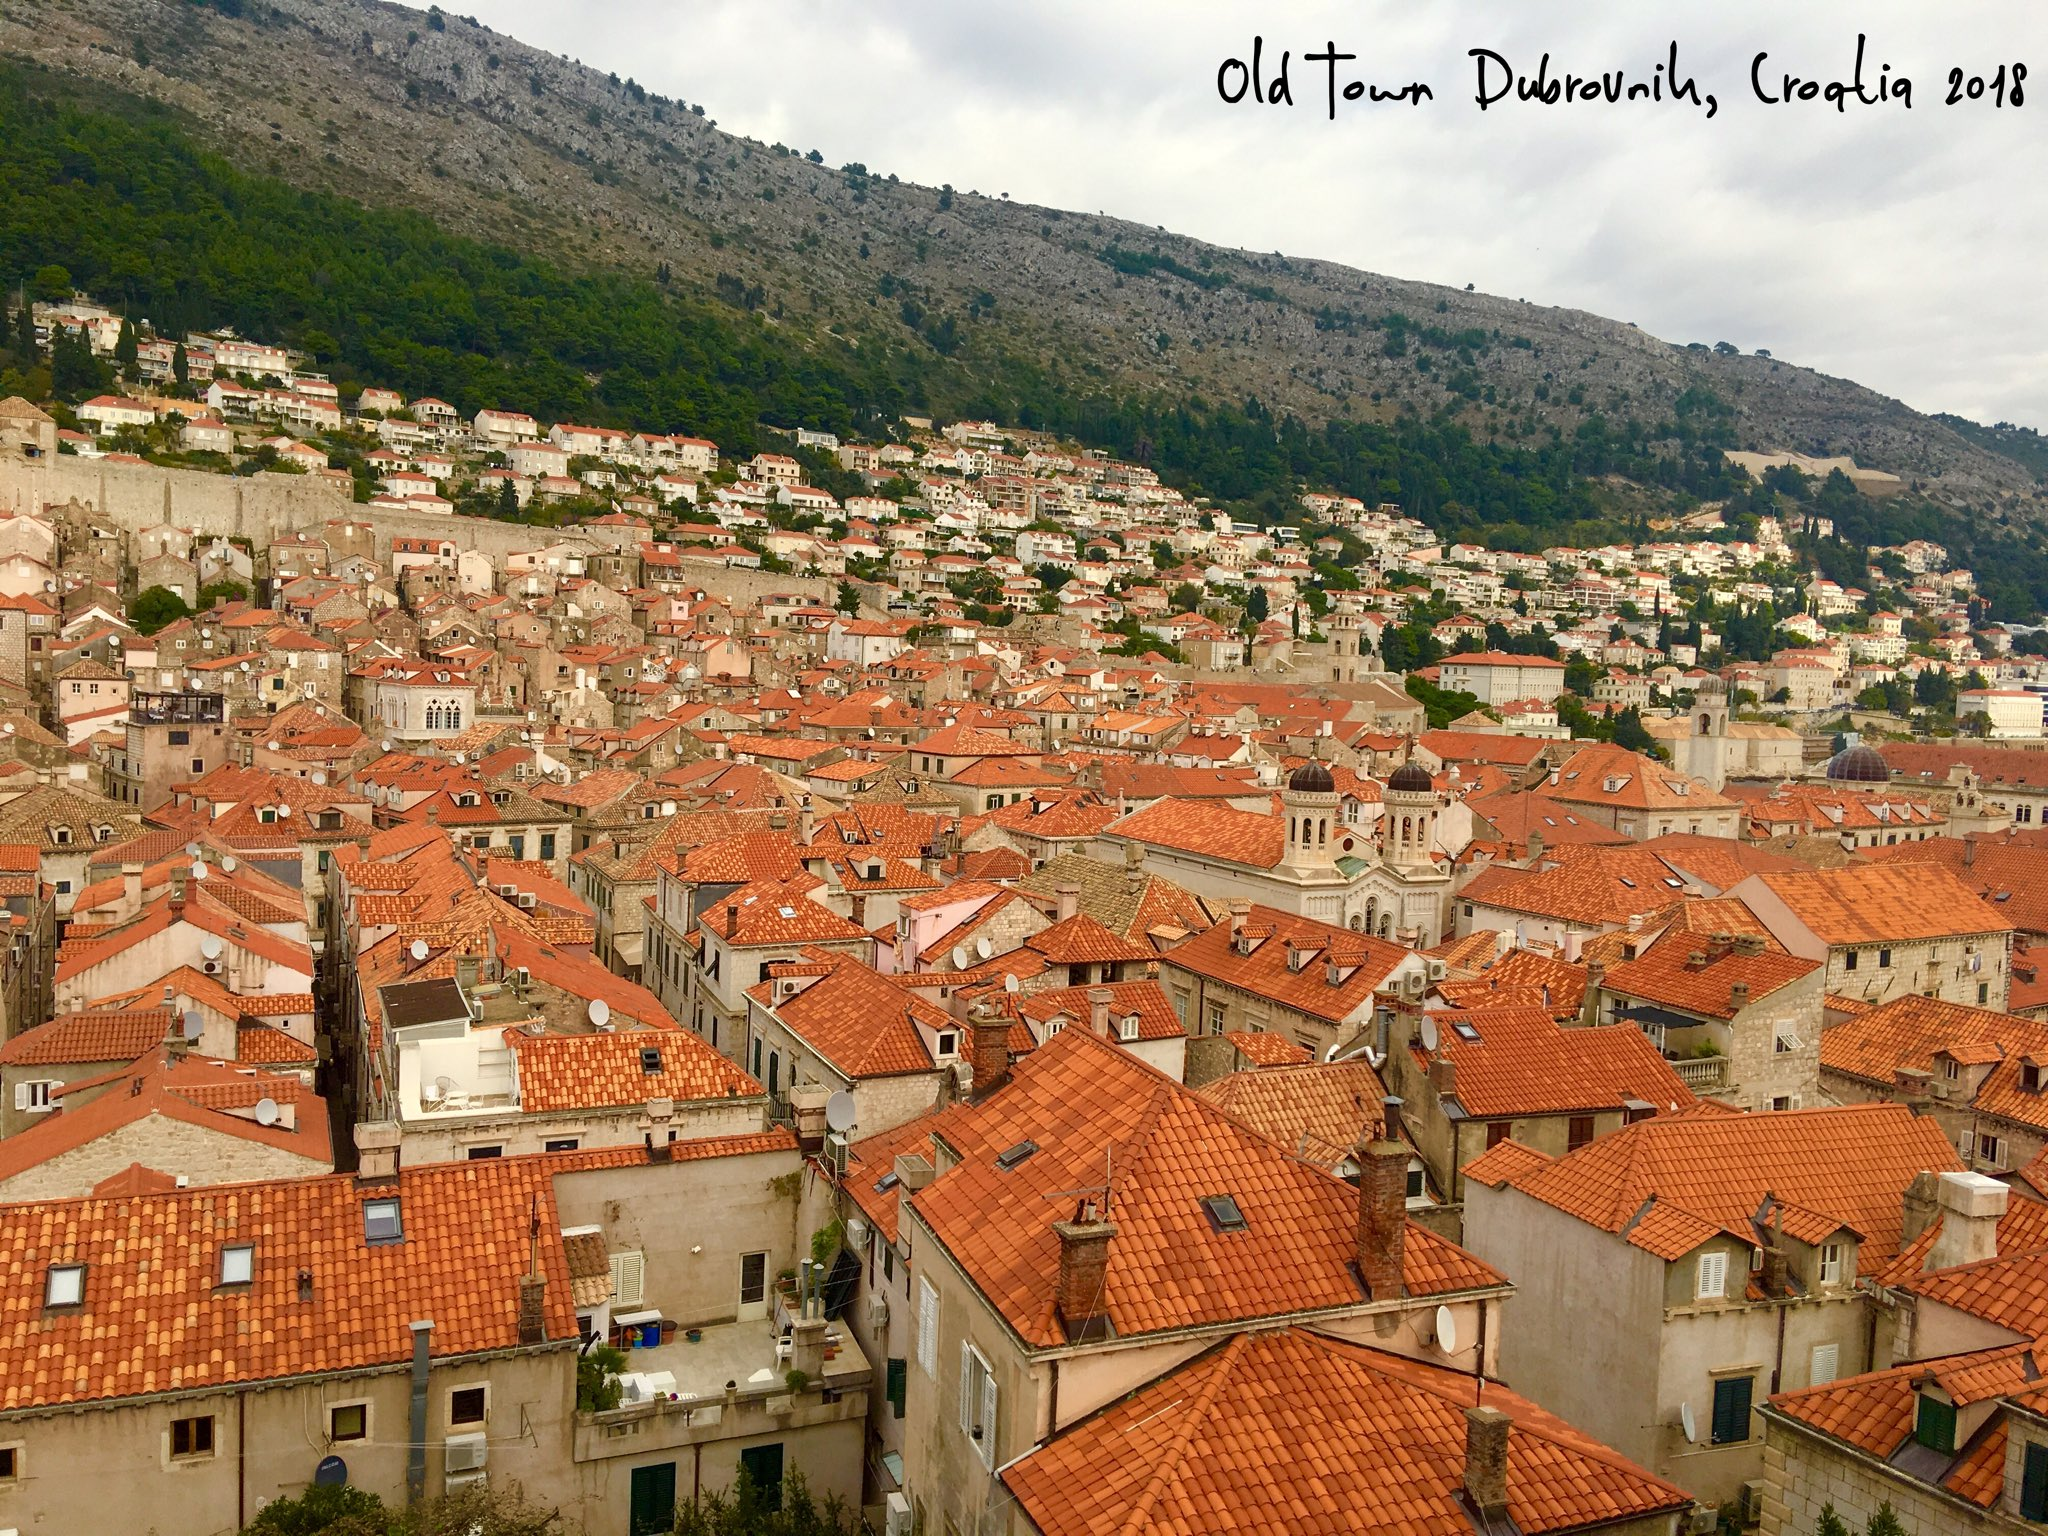 Odyssey Croatia 2018, Terra-cotta roofs of the old town. https://t.co/i1x9xHOh7H